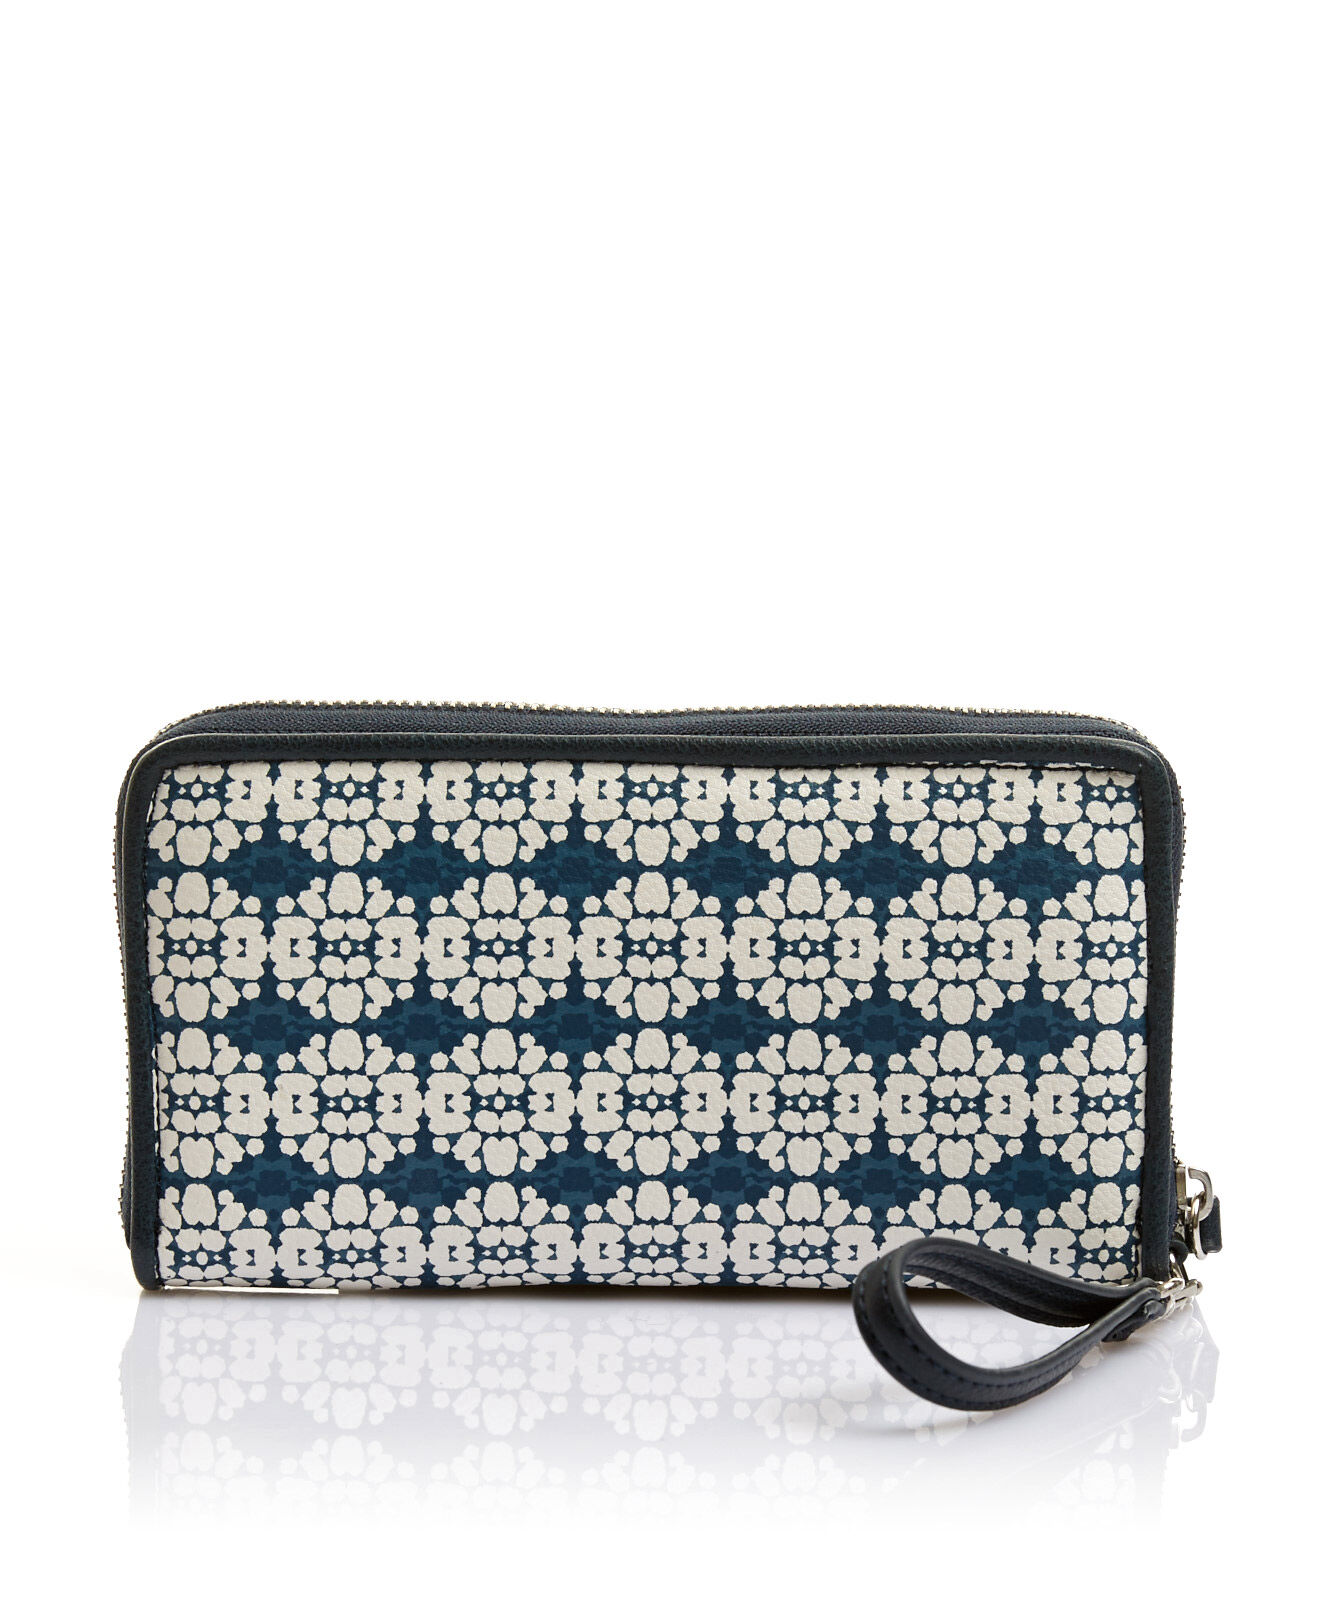 NEW-JAG-WOMENS-PRINTED-ZIP-AROUND-WALLET-Wallets